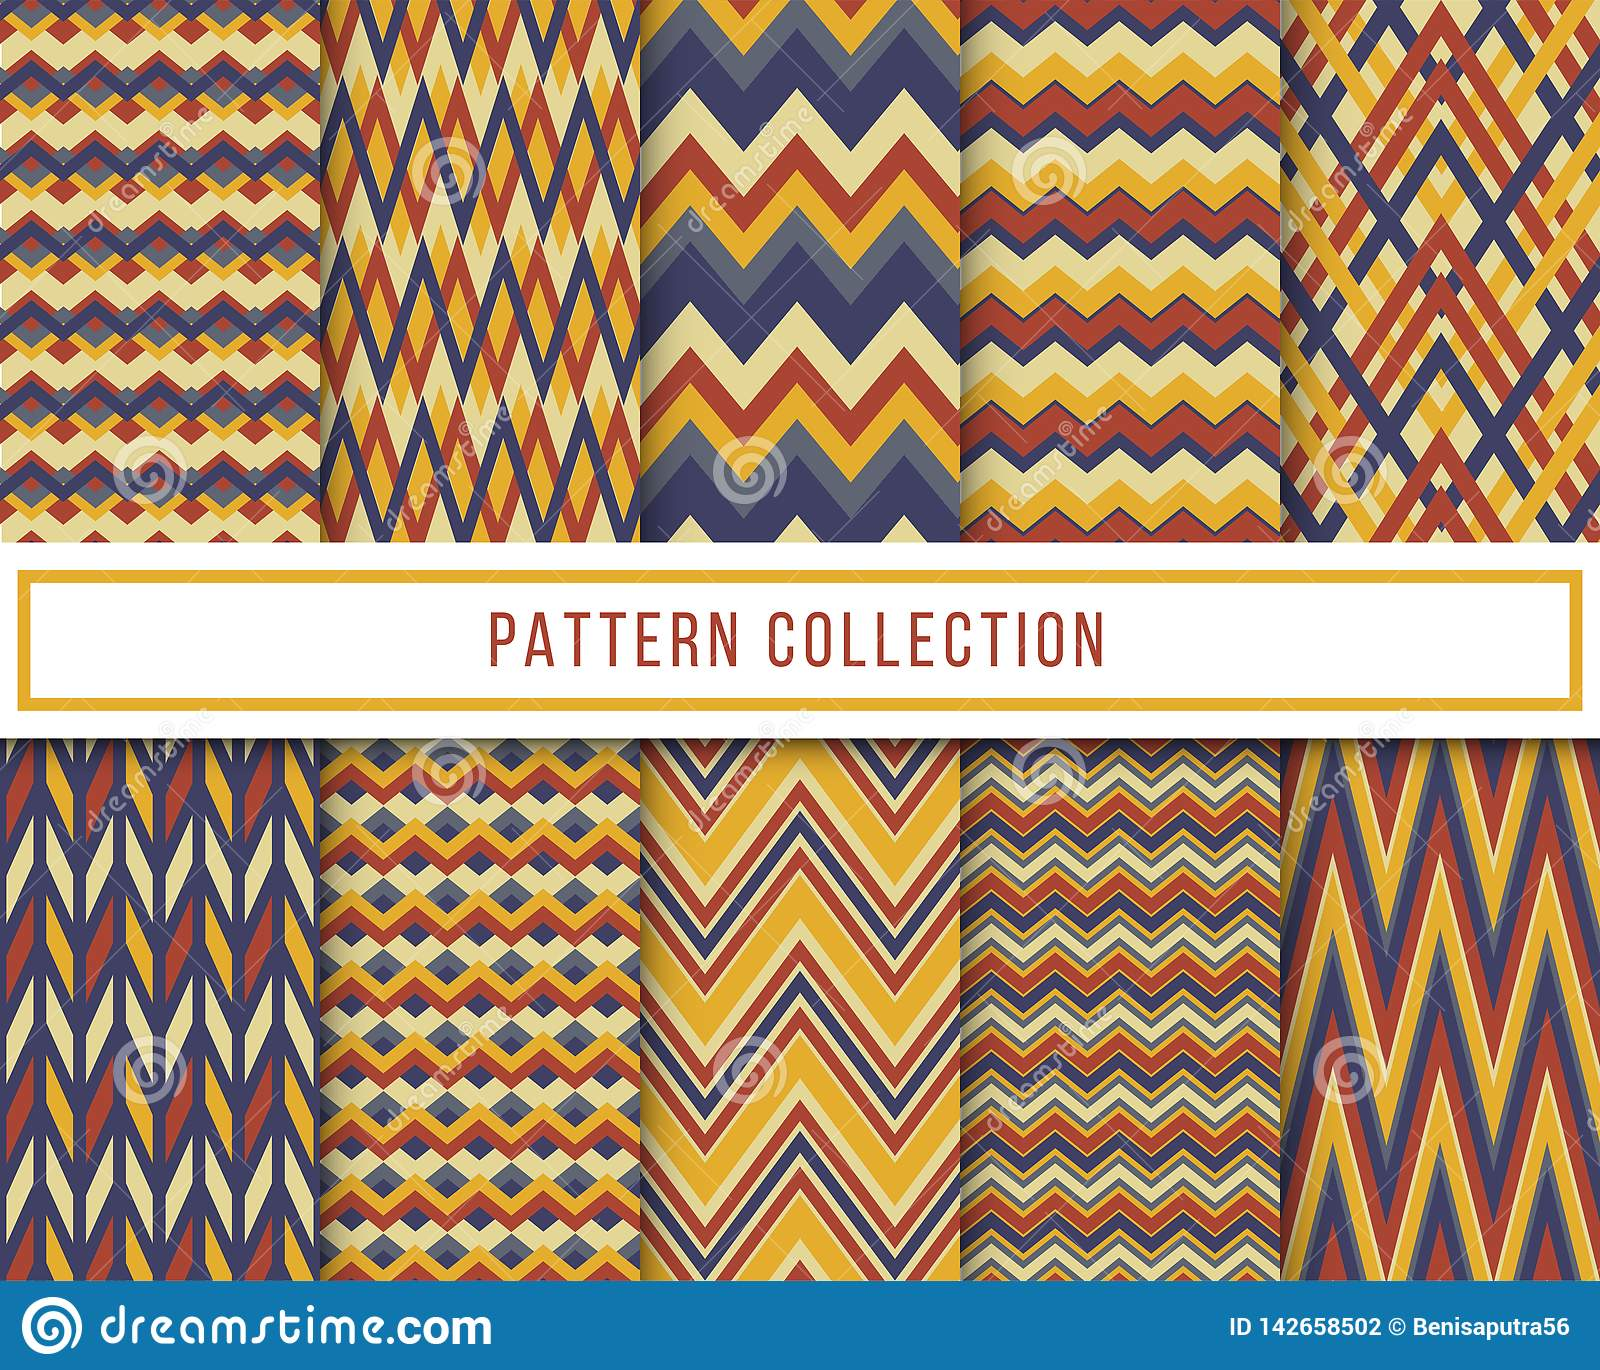 Vector set of 10 blue and yellow retro vintage chevron zigzag seamless pattern for wallpaper, fabric, wrapping, textile printing